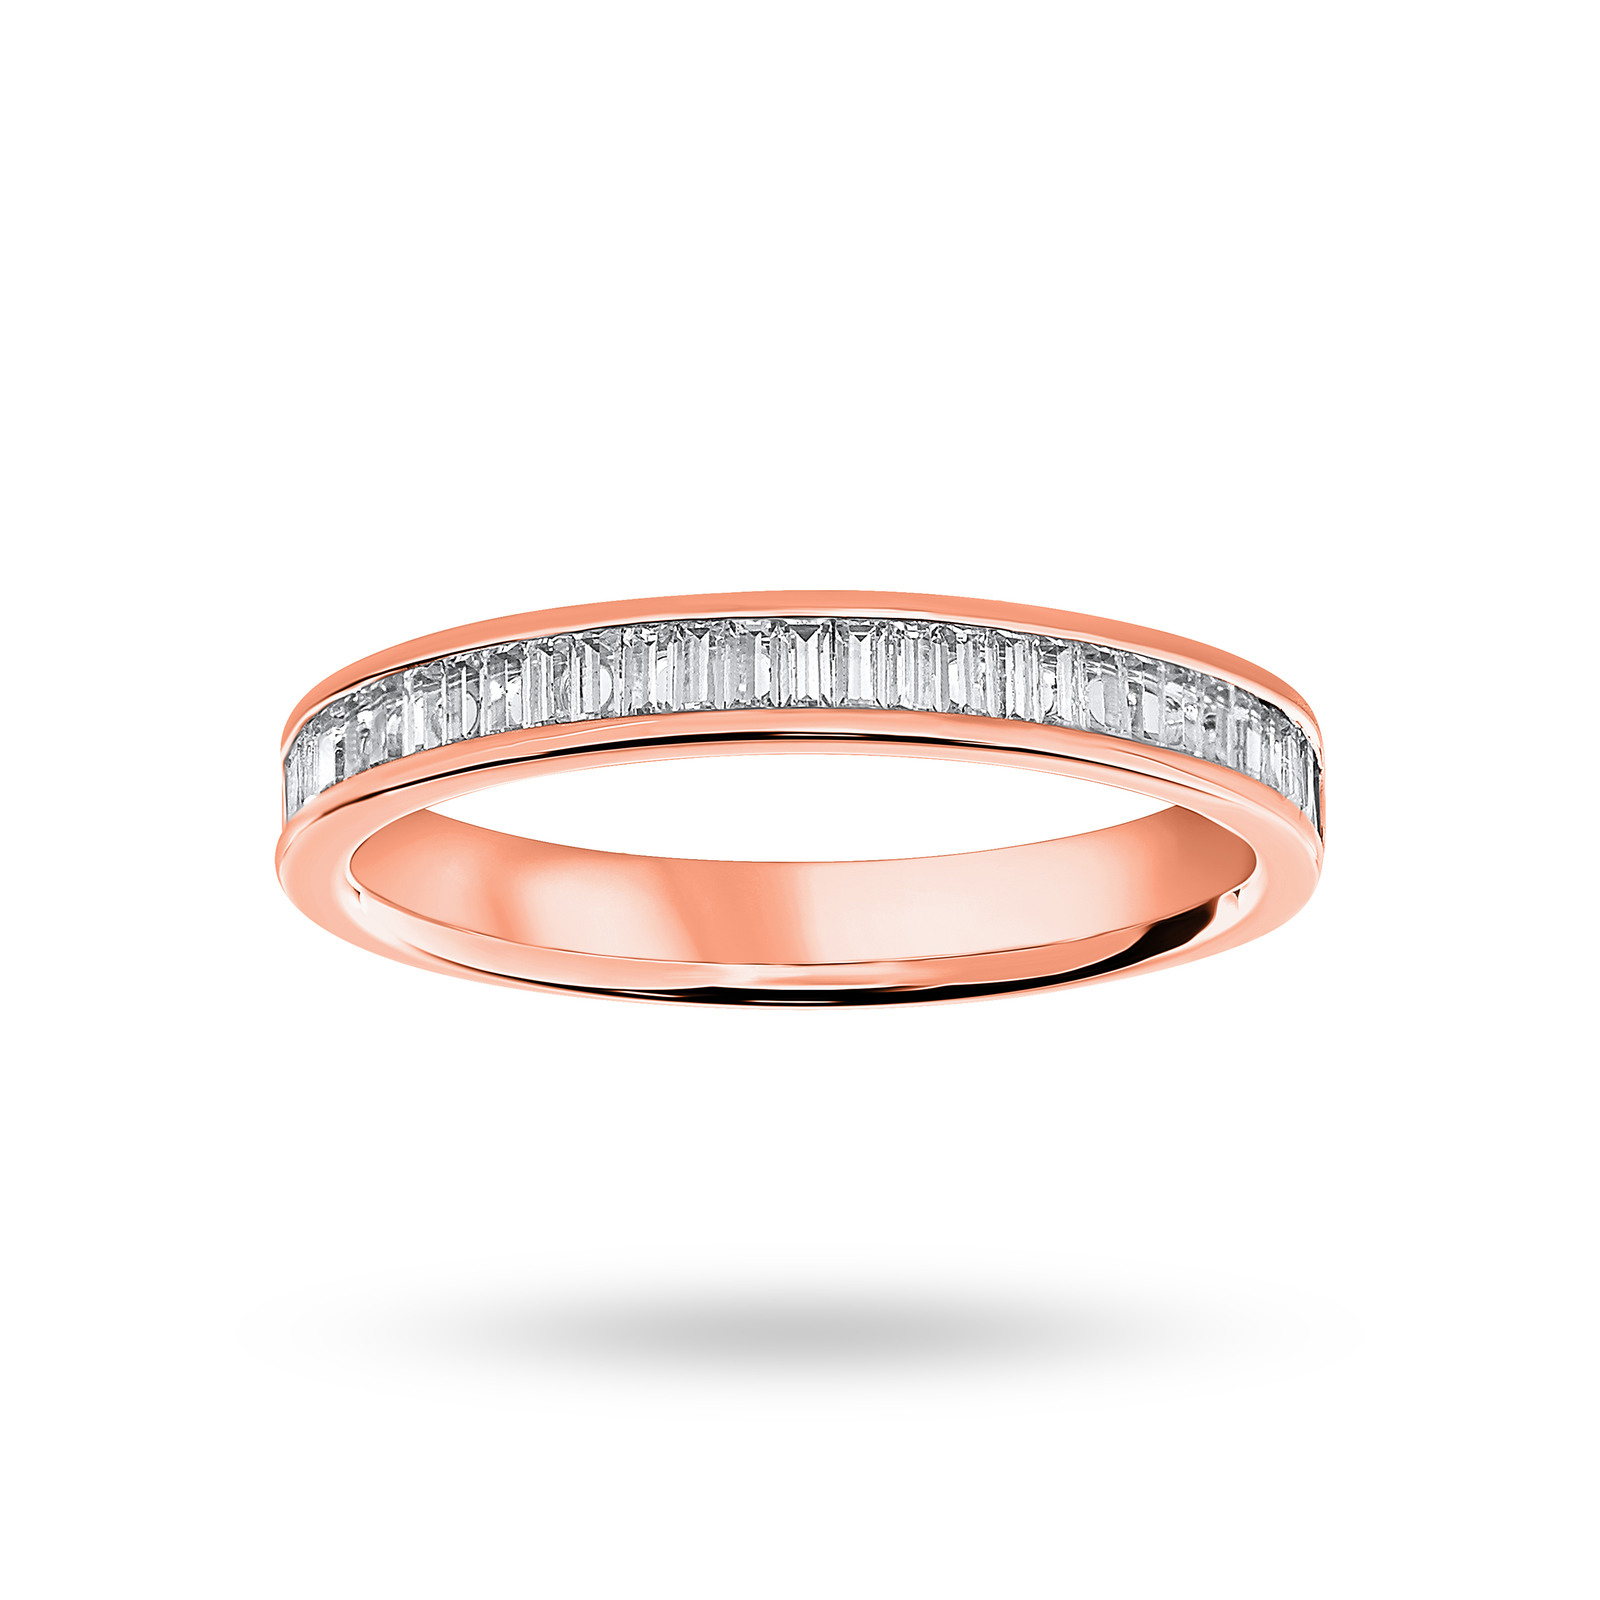 18 Carat Rose Gold 0.33 Carat Baguette Cut Half Eternity Ring